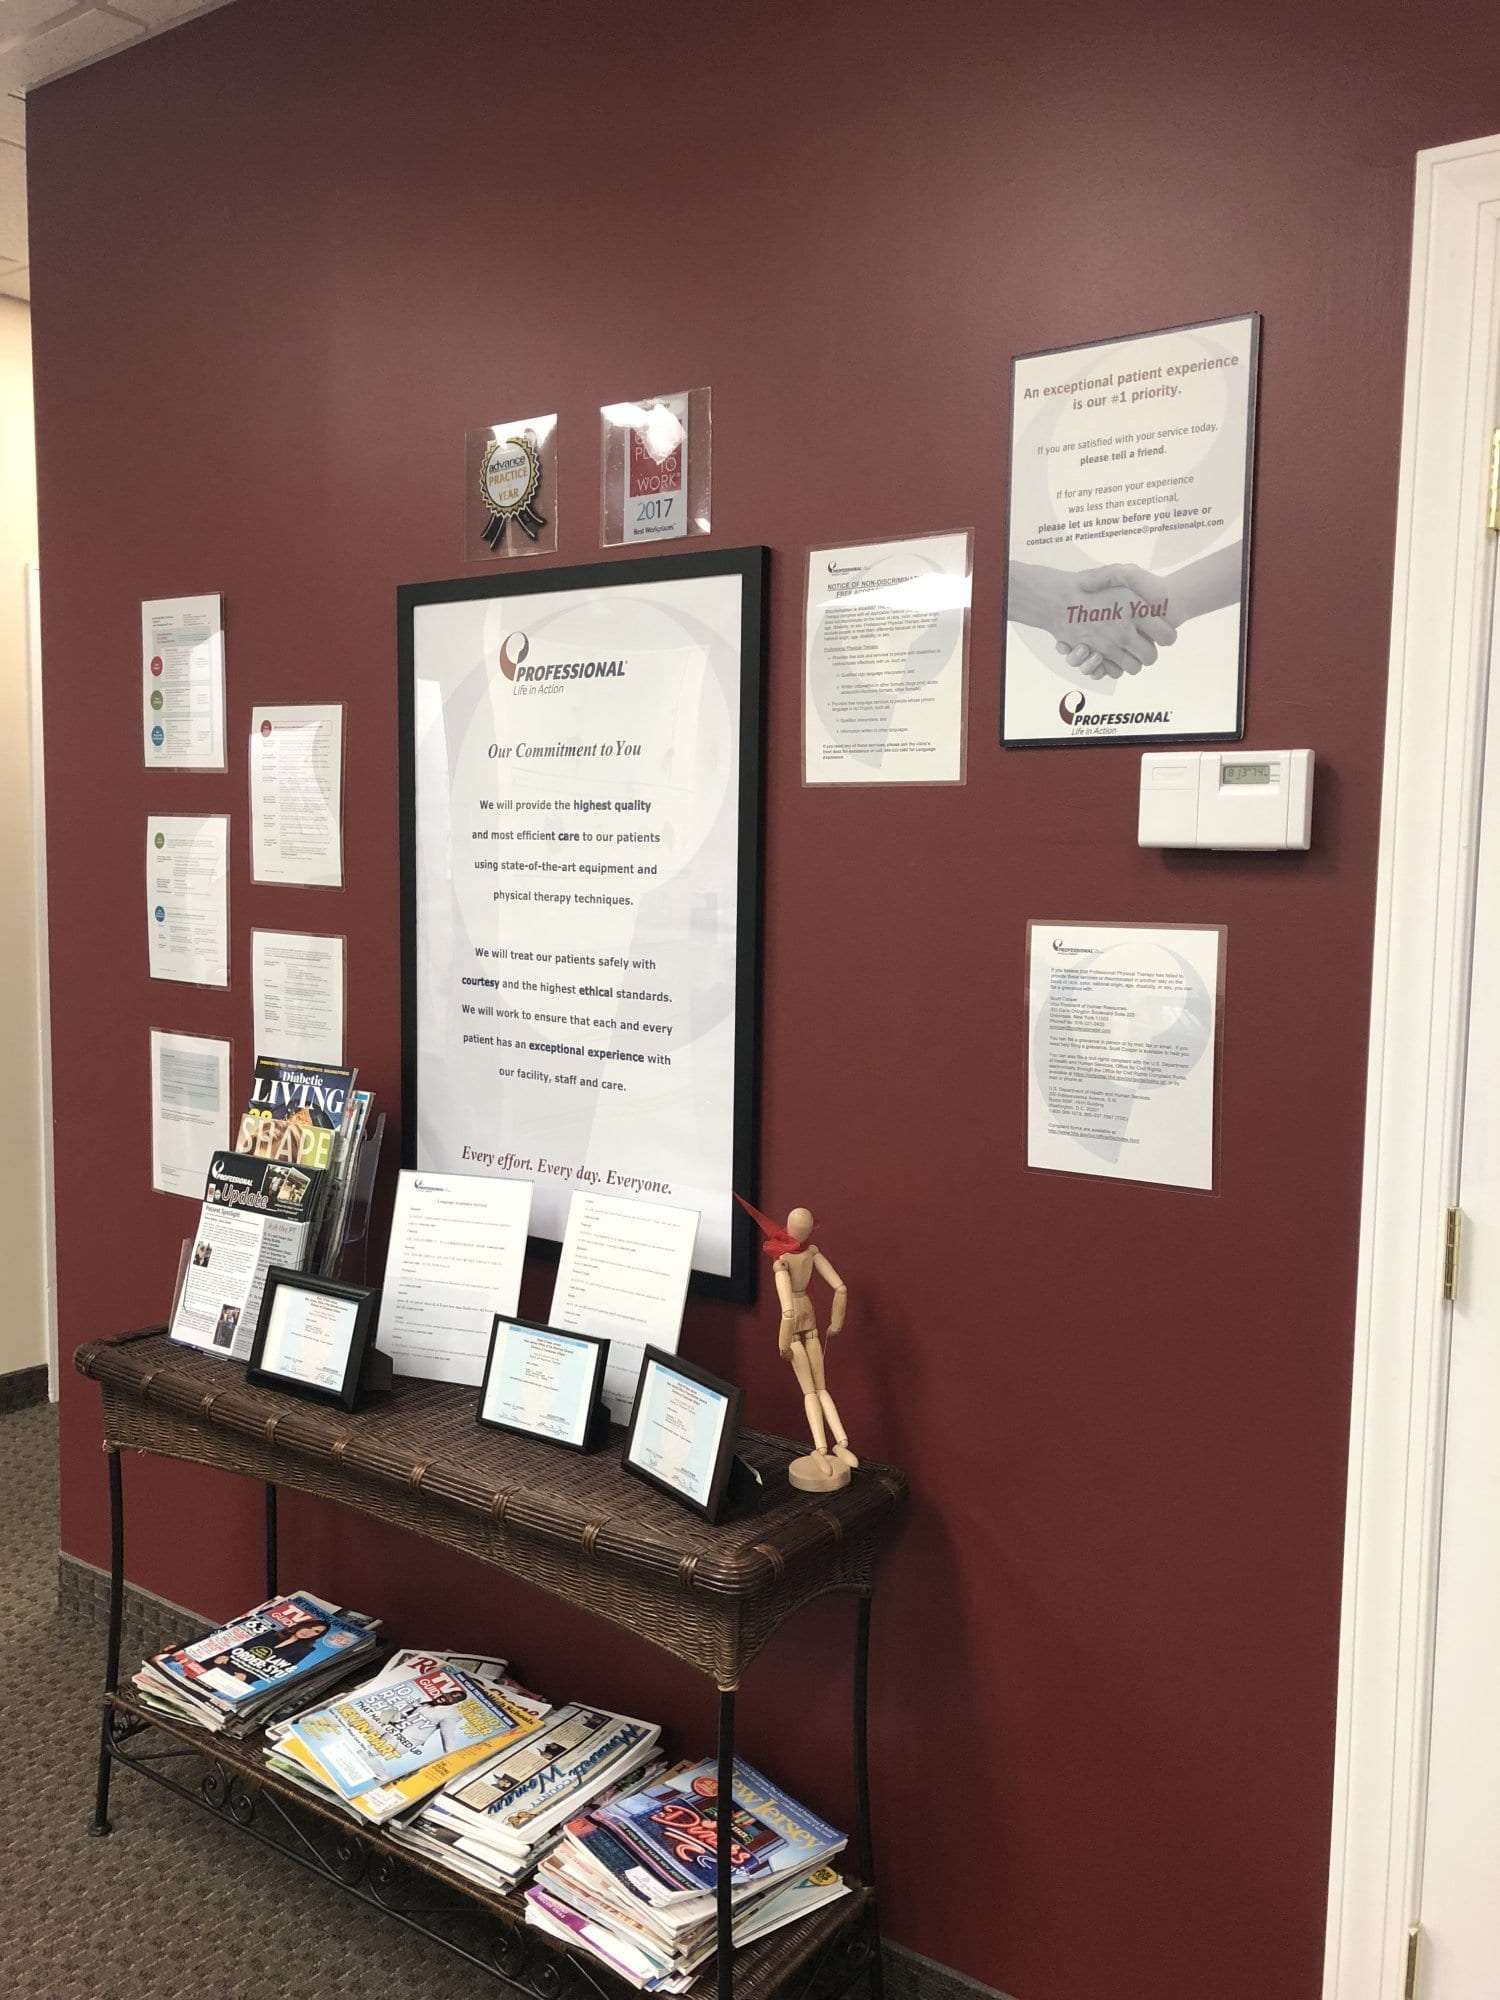 An image of signs on a wall at our physical therapy clinic in Hazlet, New Jersey.